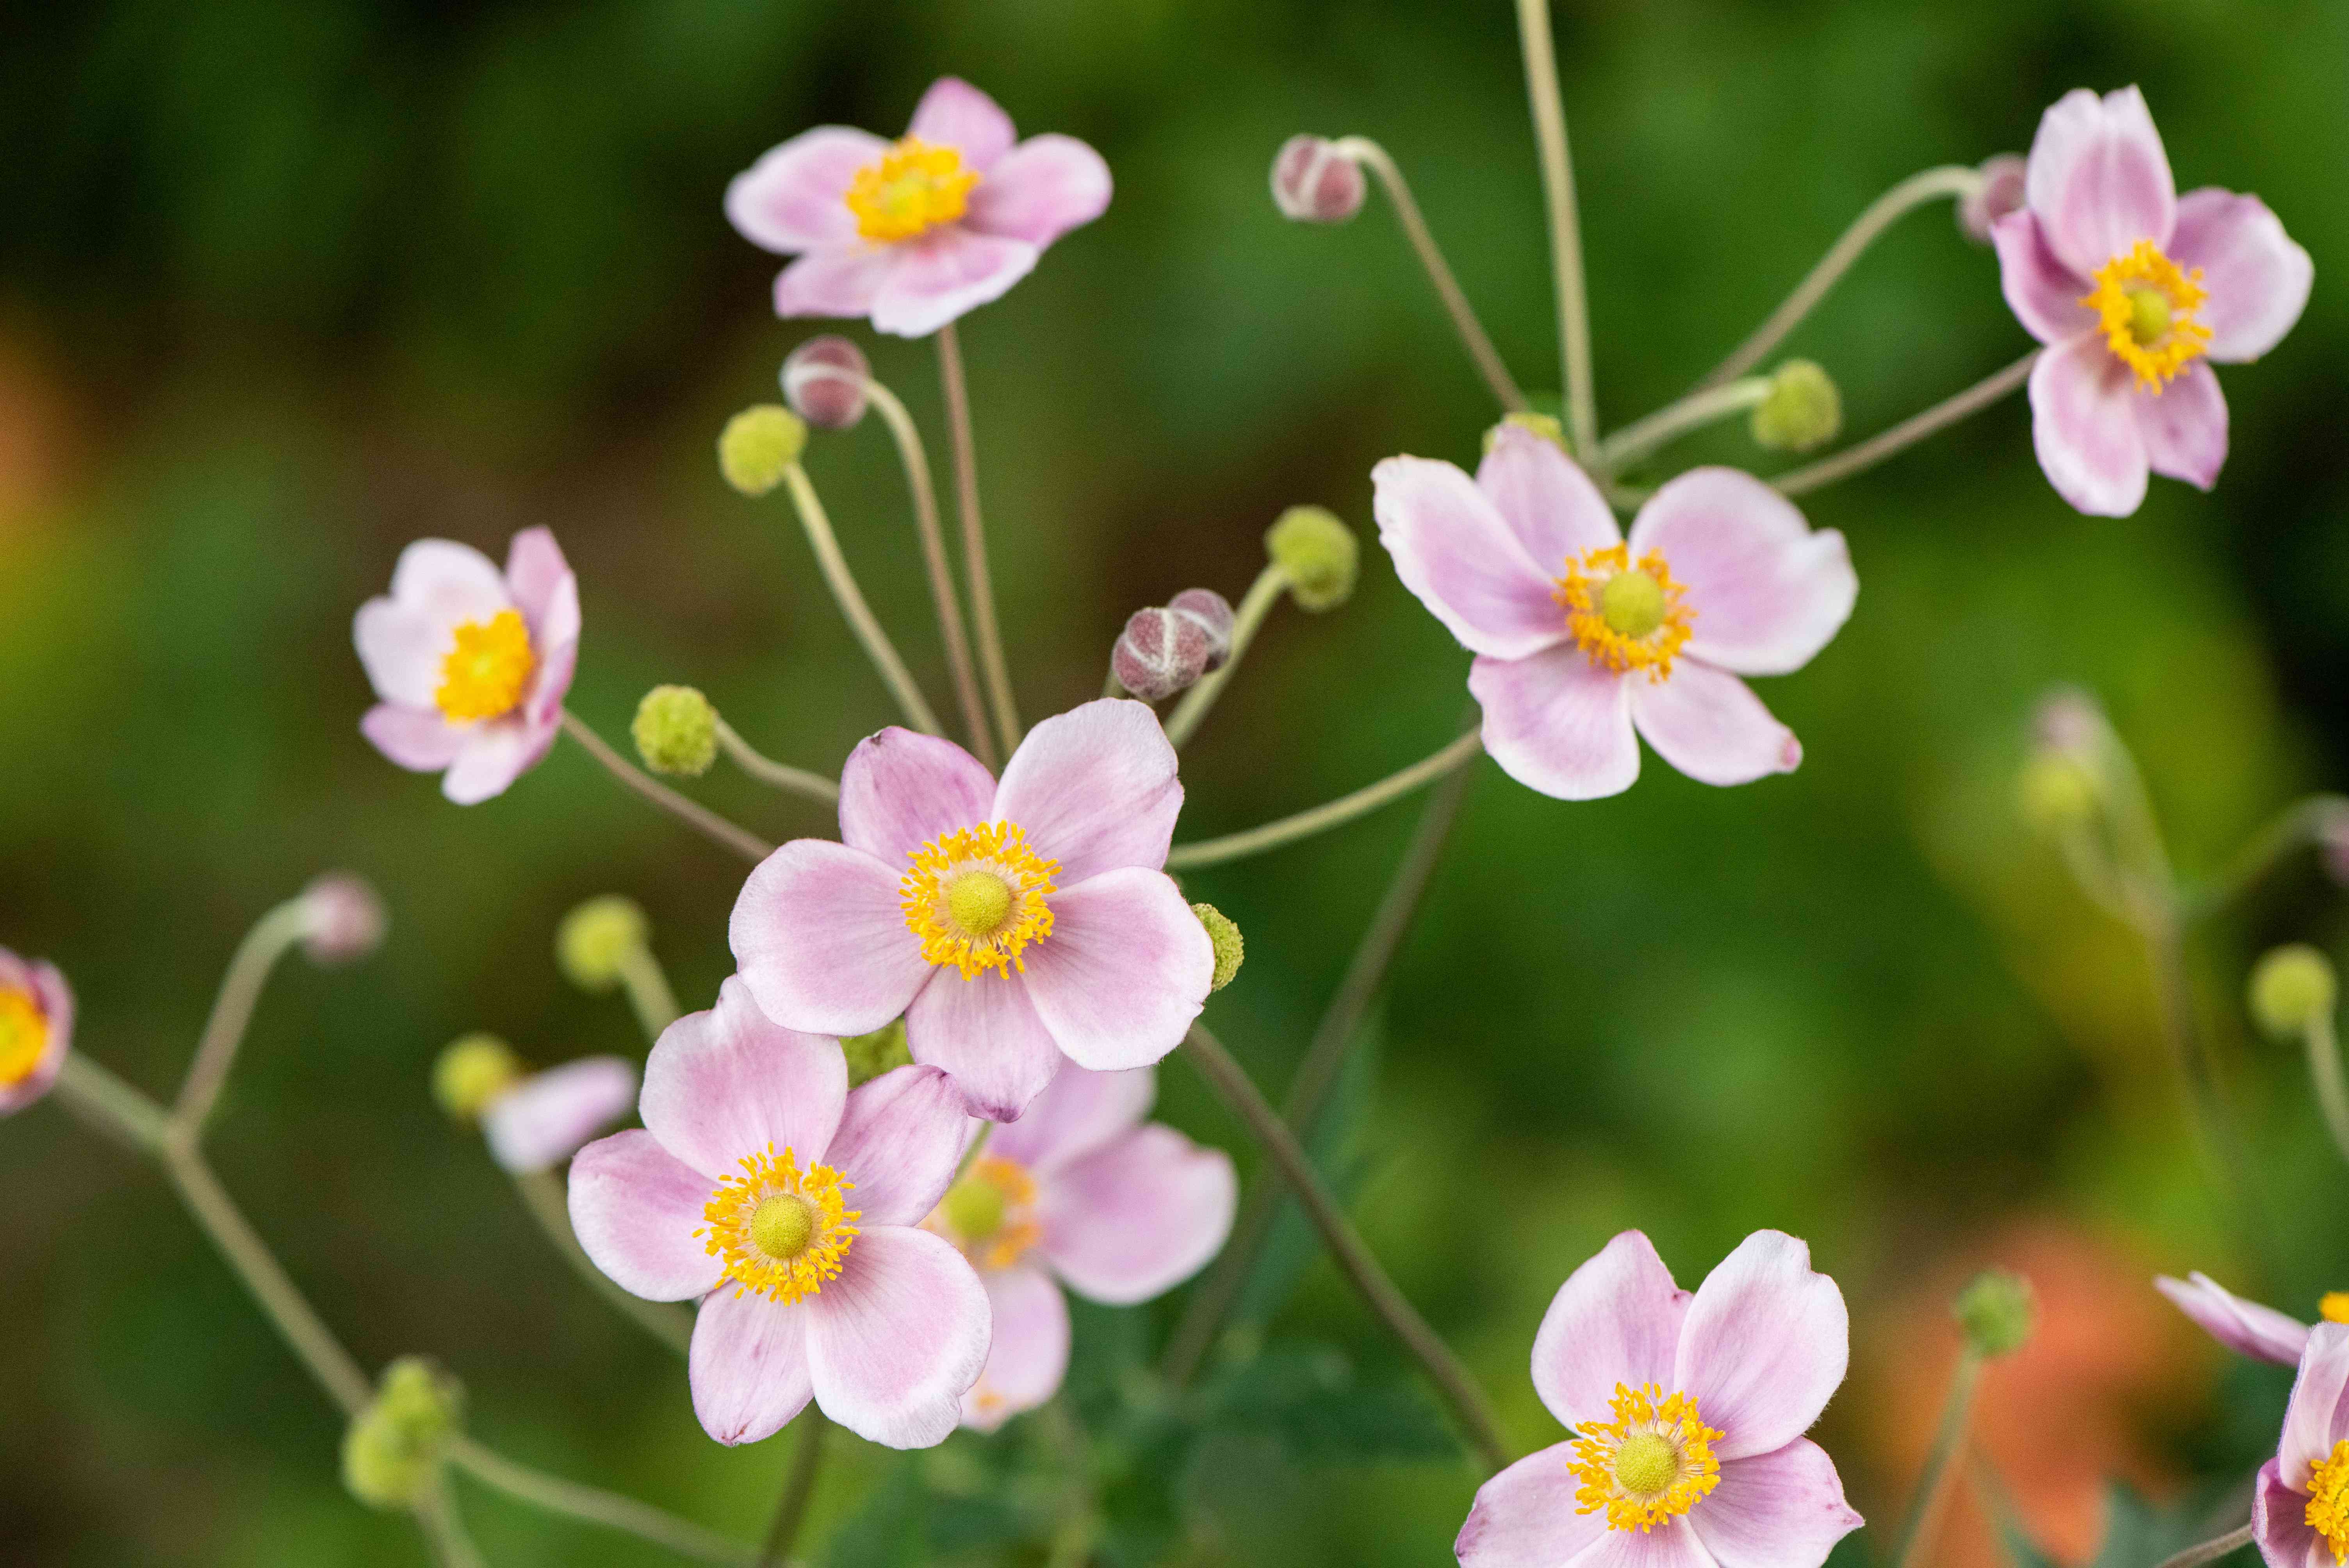 Rue anemone plant with light pink and white flowers and buds on thin stems